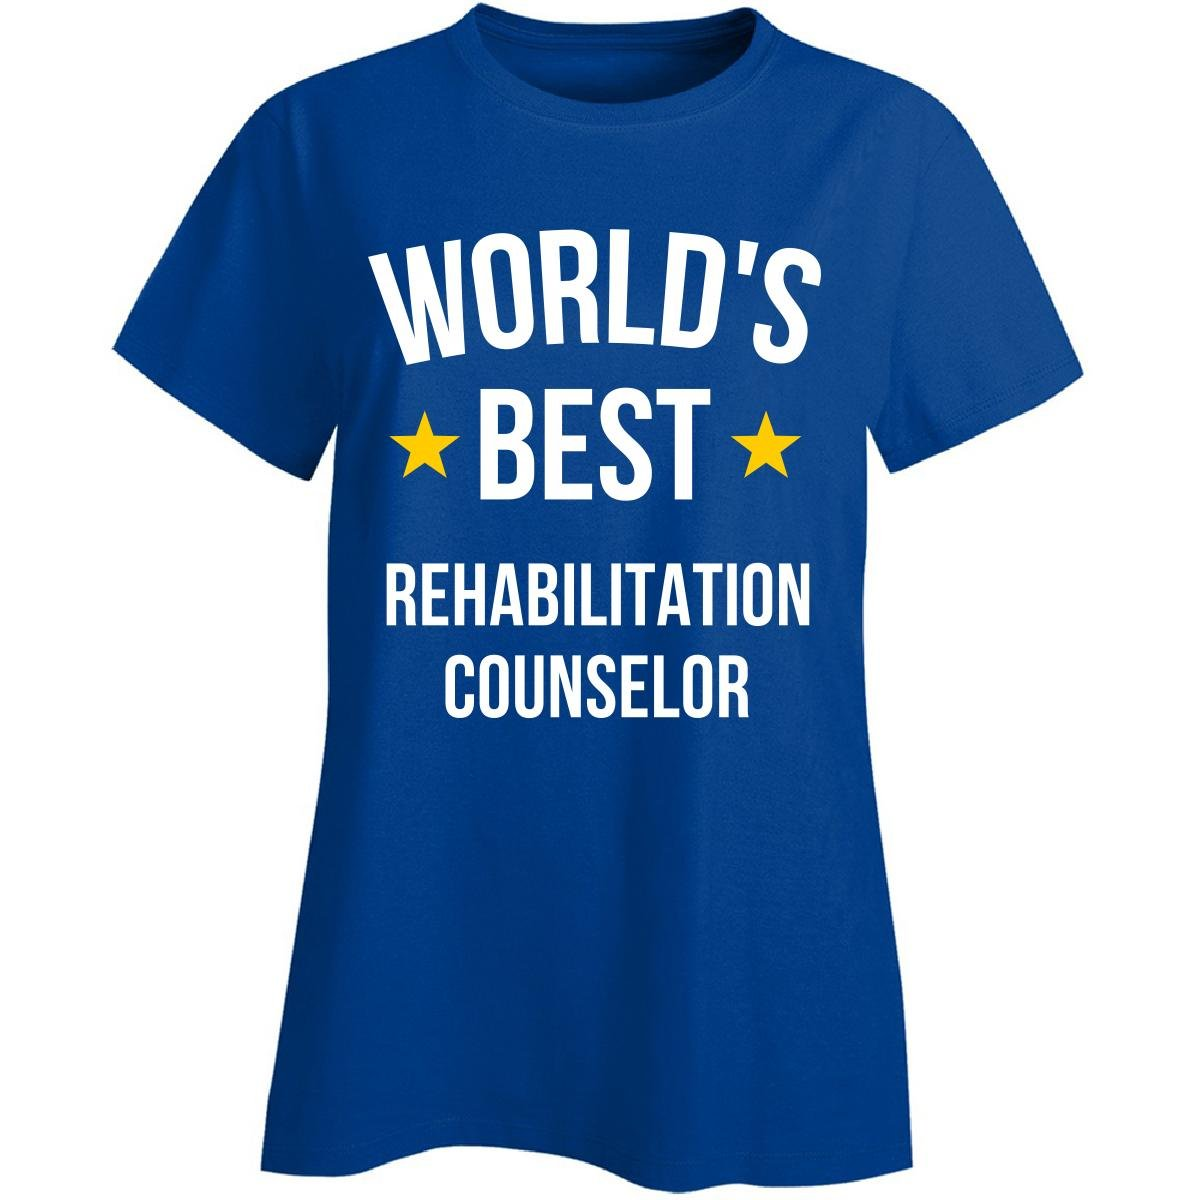 This Gift Rocks Worlds Best Rehabilitation Counselor Gift